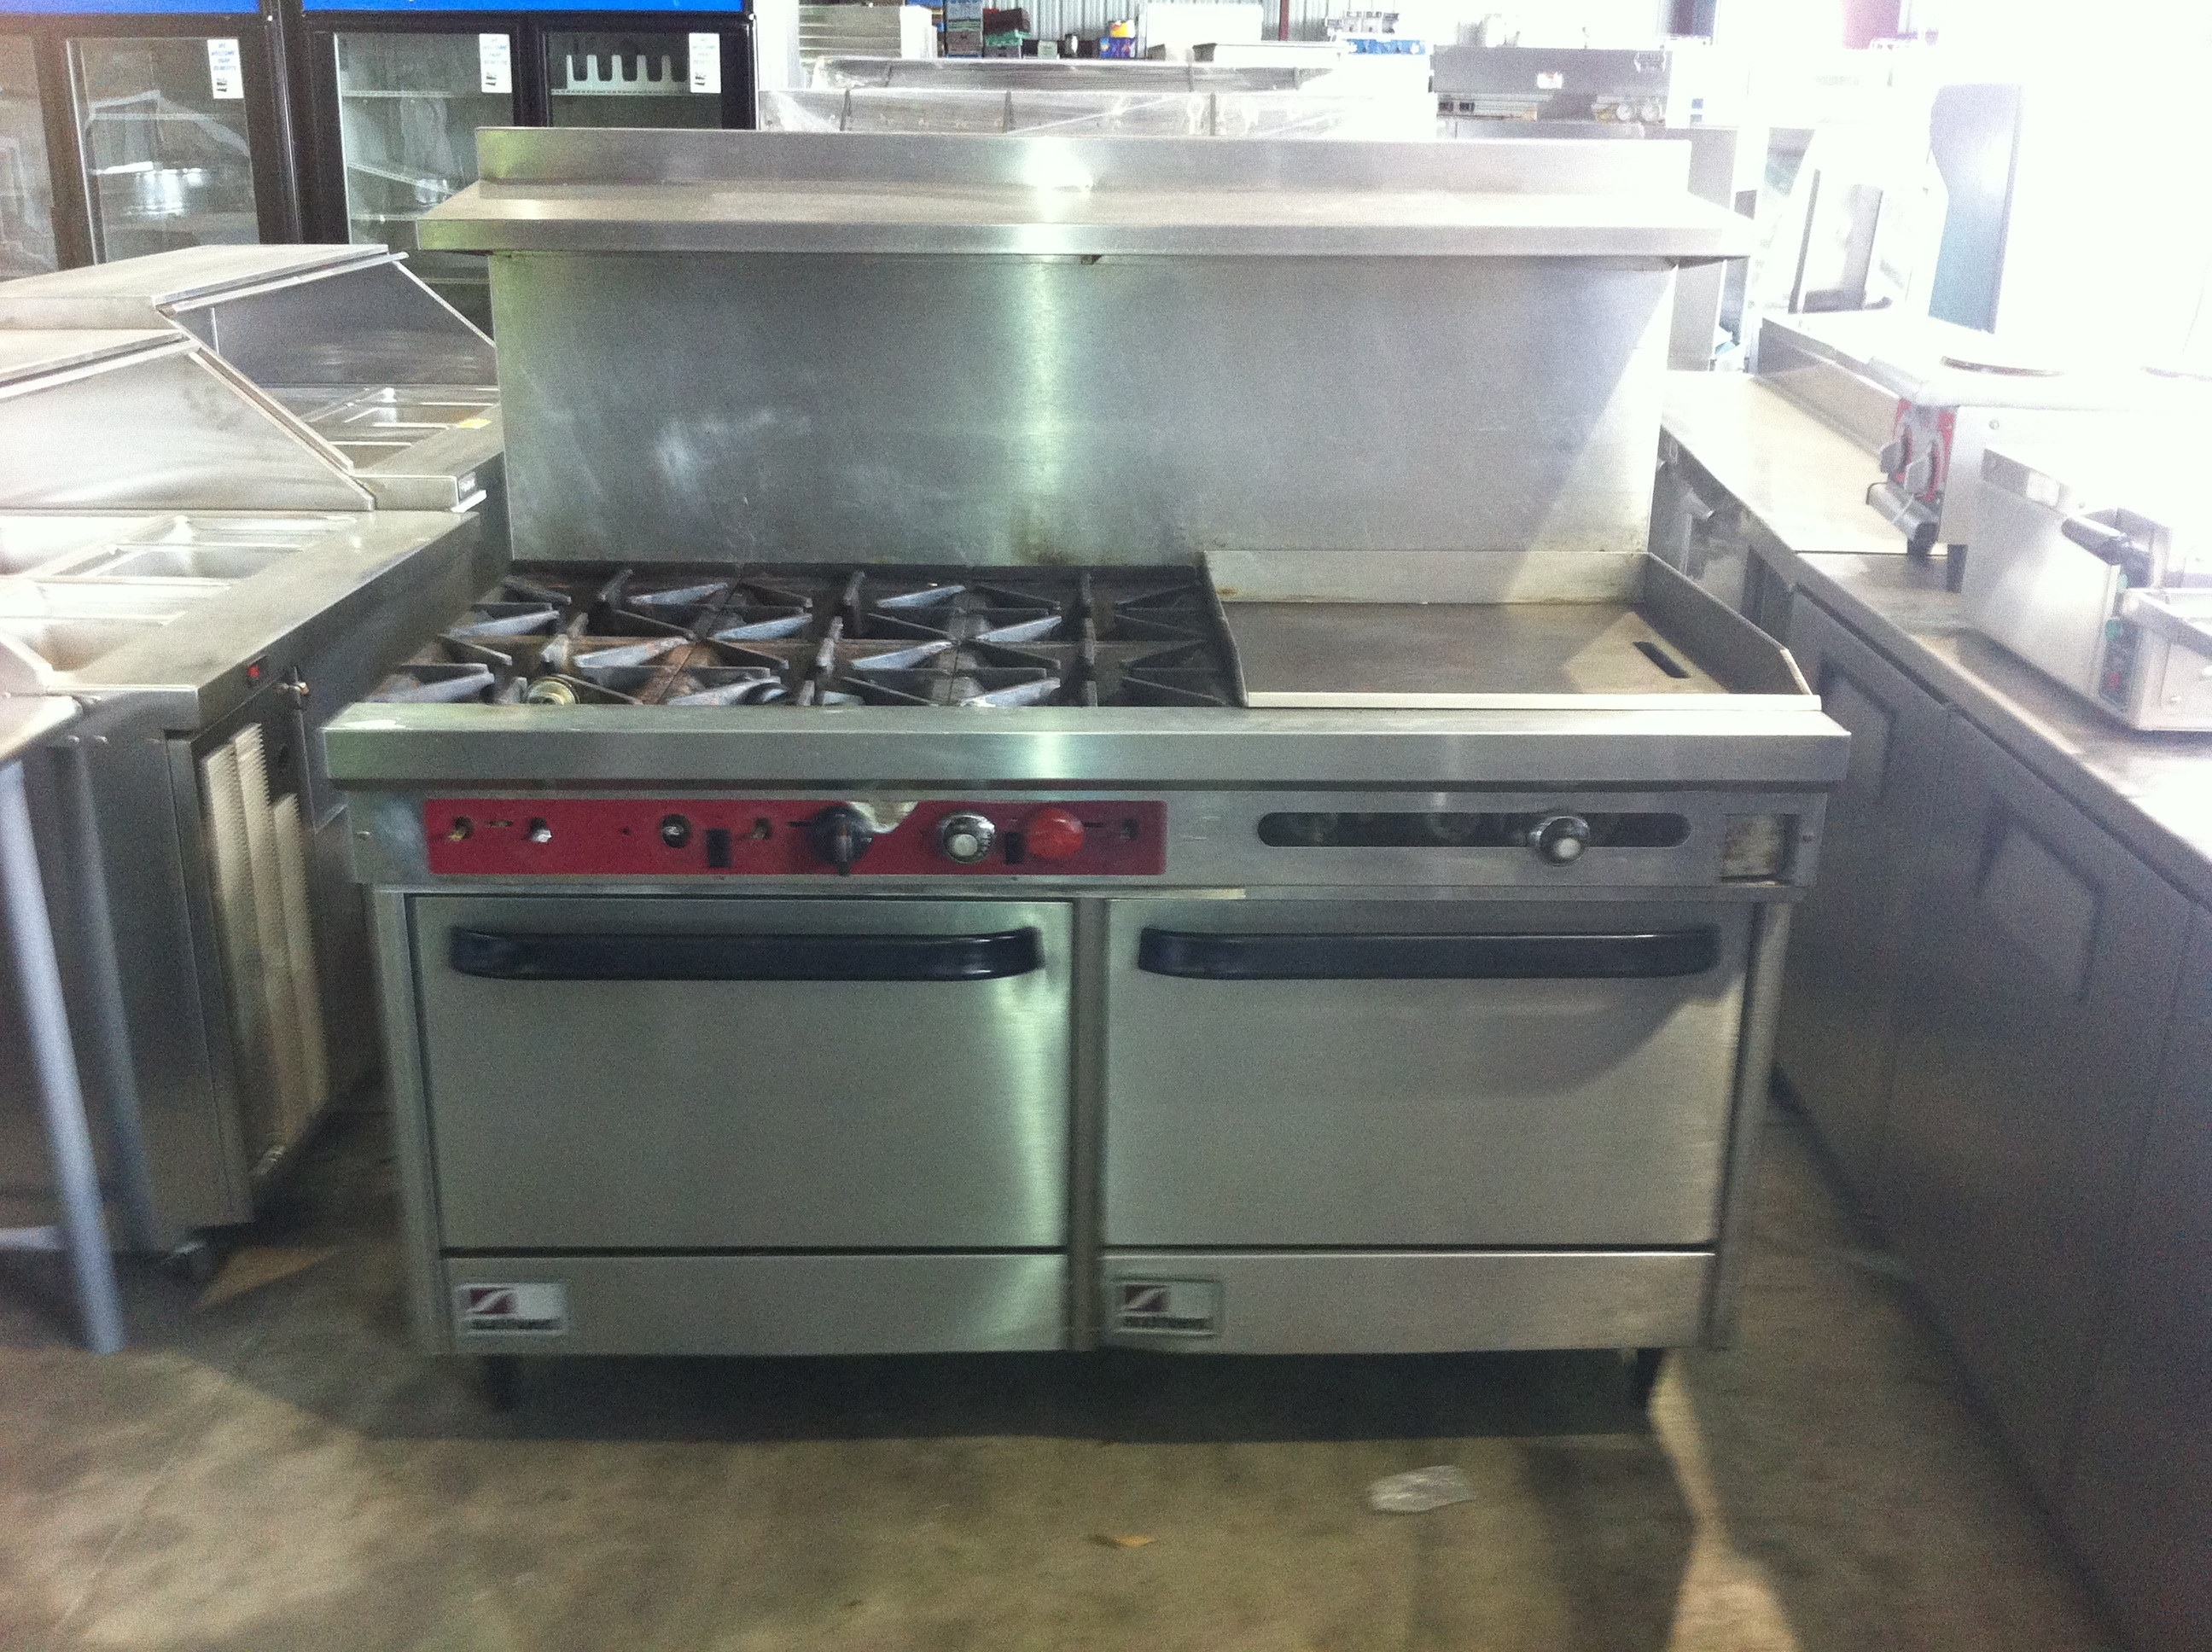 Southbend 6 burner double range oven with 24 flat griddle for Cuisine commerciale equipement